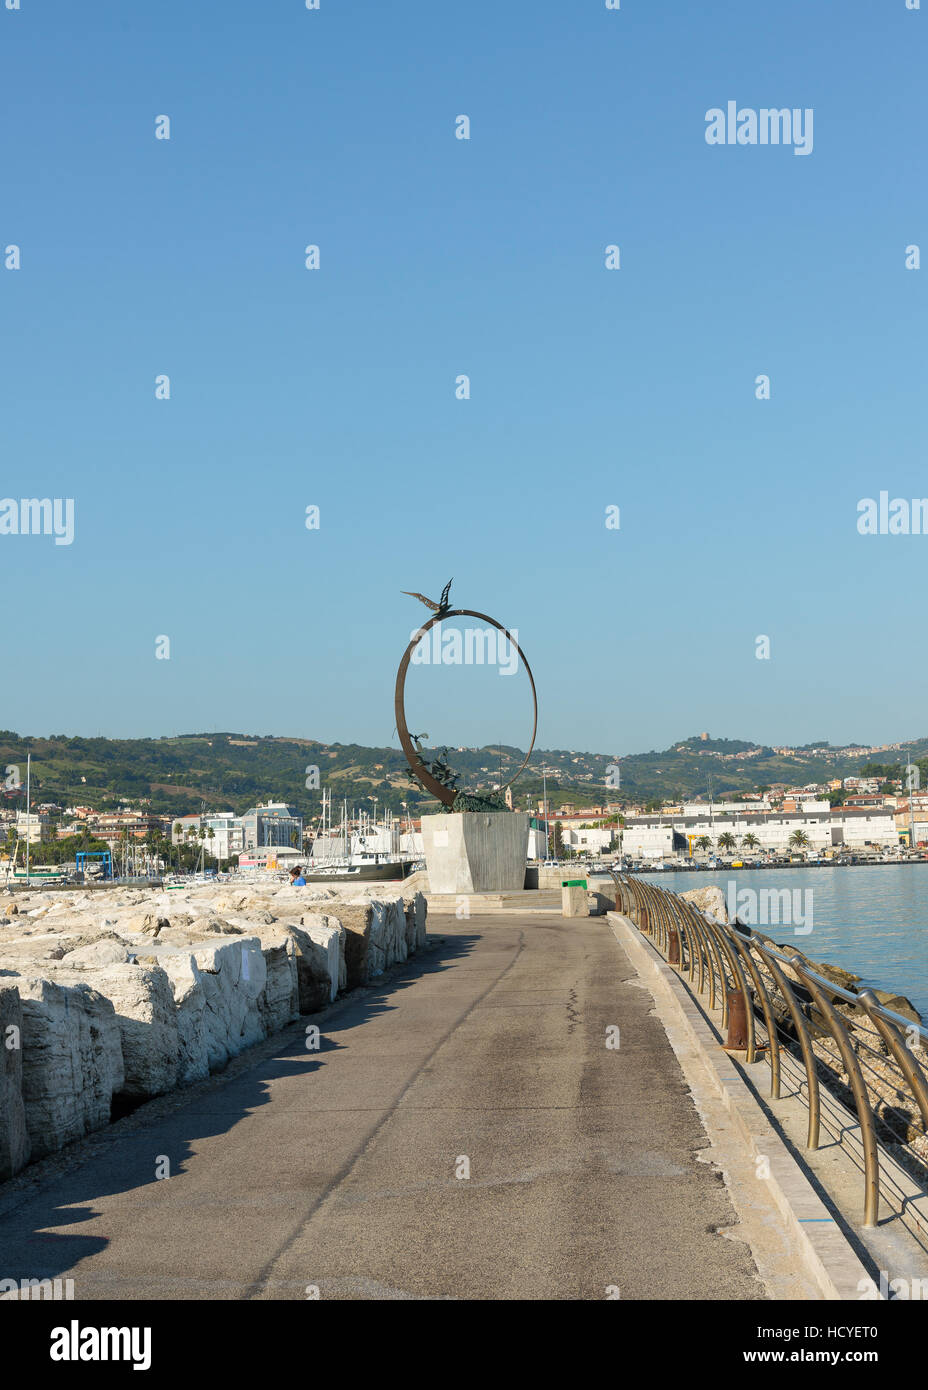 SAN BENEDETTO DEL TRONTO, ITALY - AUGUST 29, 2016: detail of monument freedom symbol seagull Jonathan Livingston - Stock Image